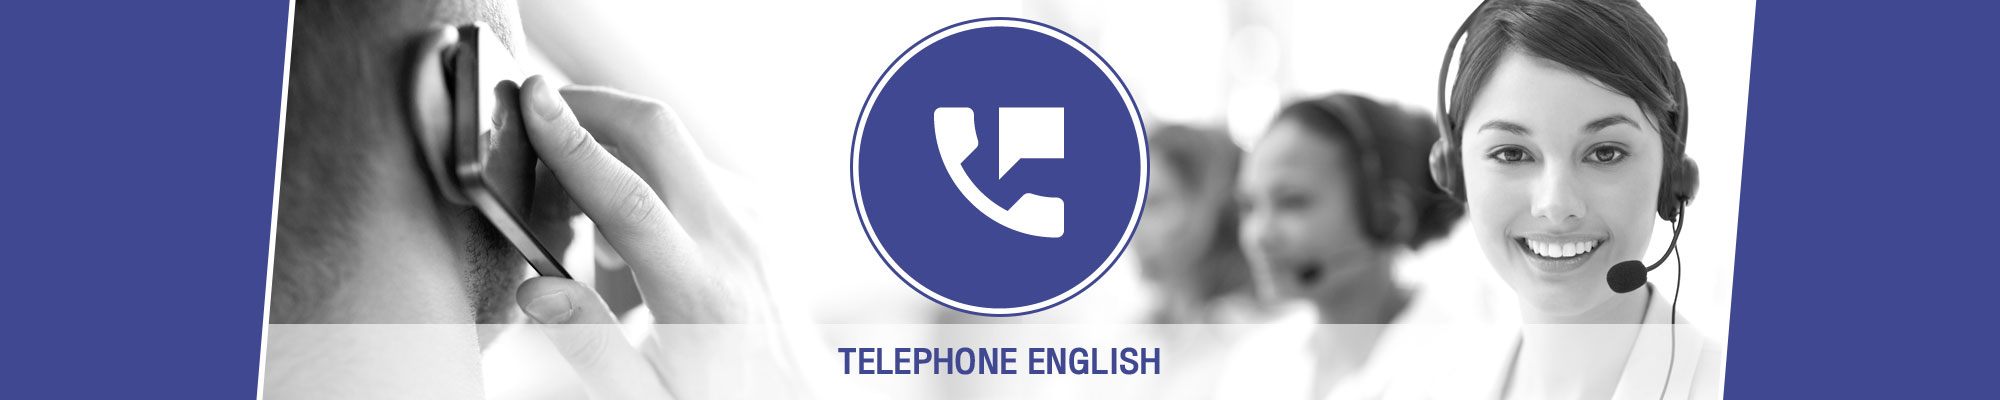 Anglokom Corporate Language Training Bangkok - Telephone English